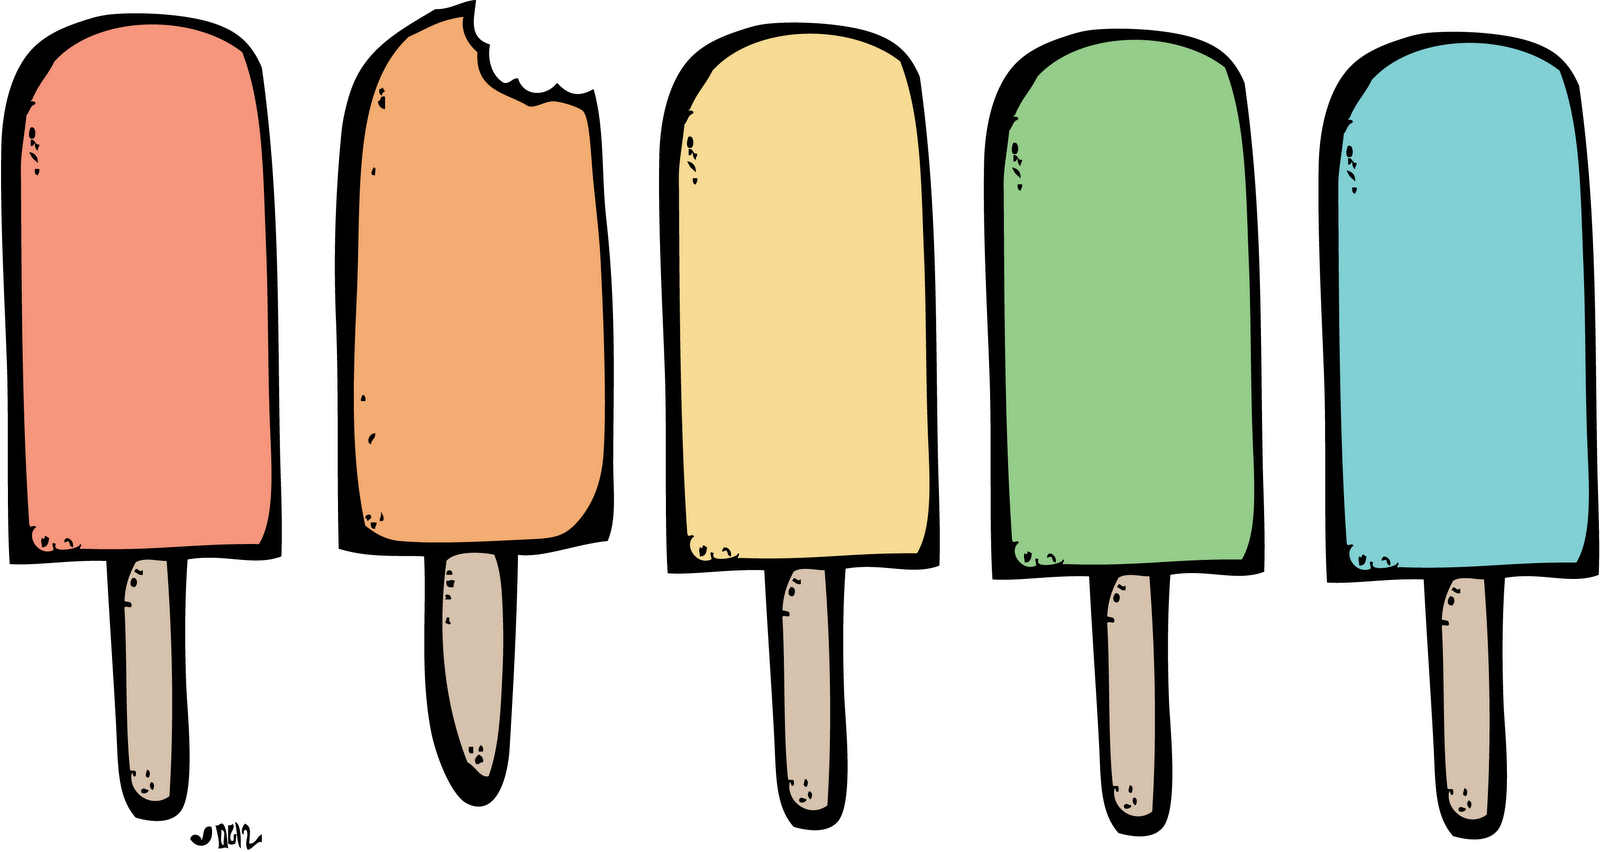 Popsicle clip art images illustrations photos 2